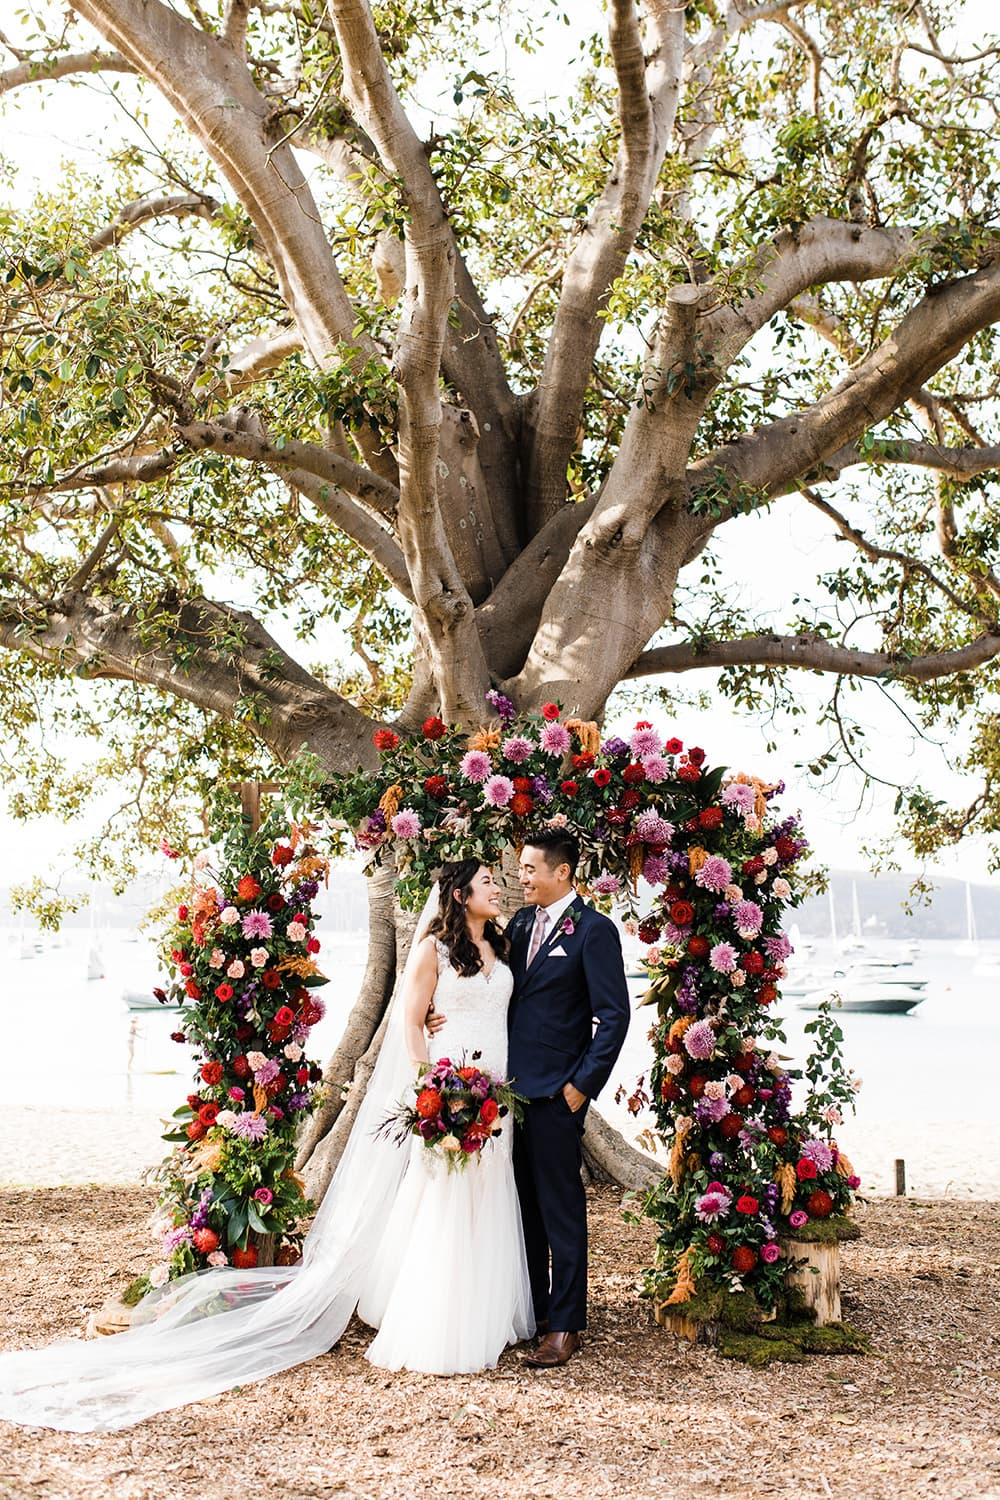 Visually Creative | Sydney Wedding Flowers & Styling